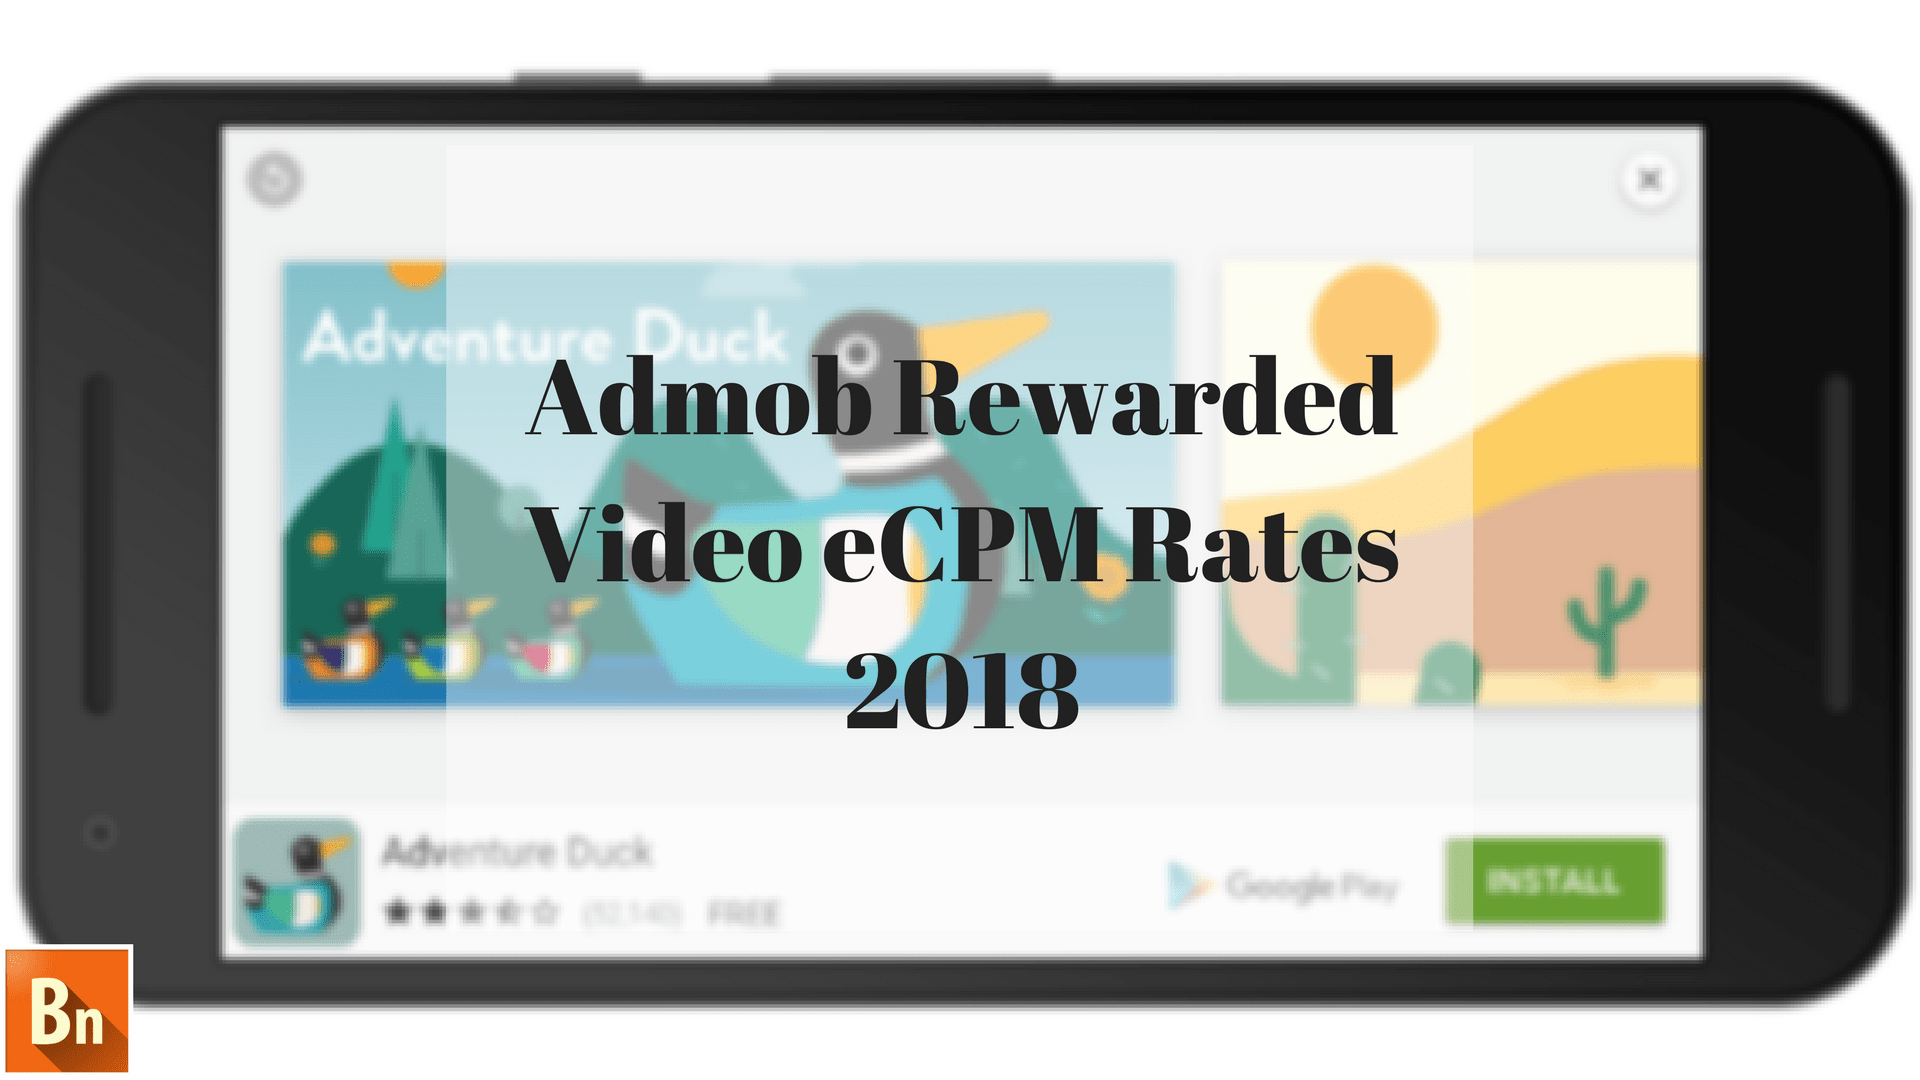 Admob Rewarded Video eCPM Rates 2018